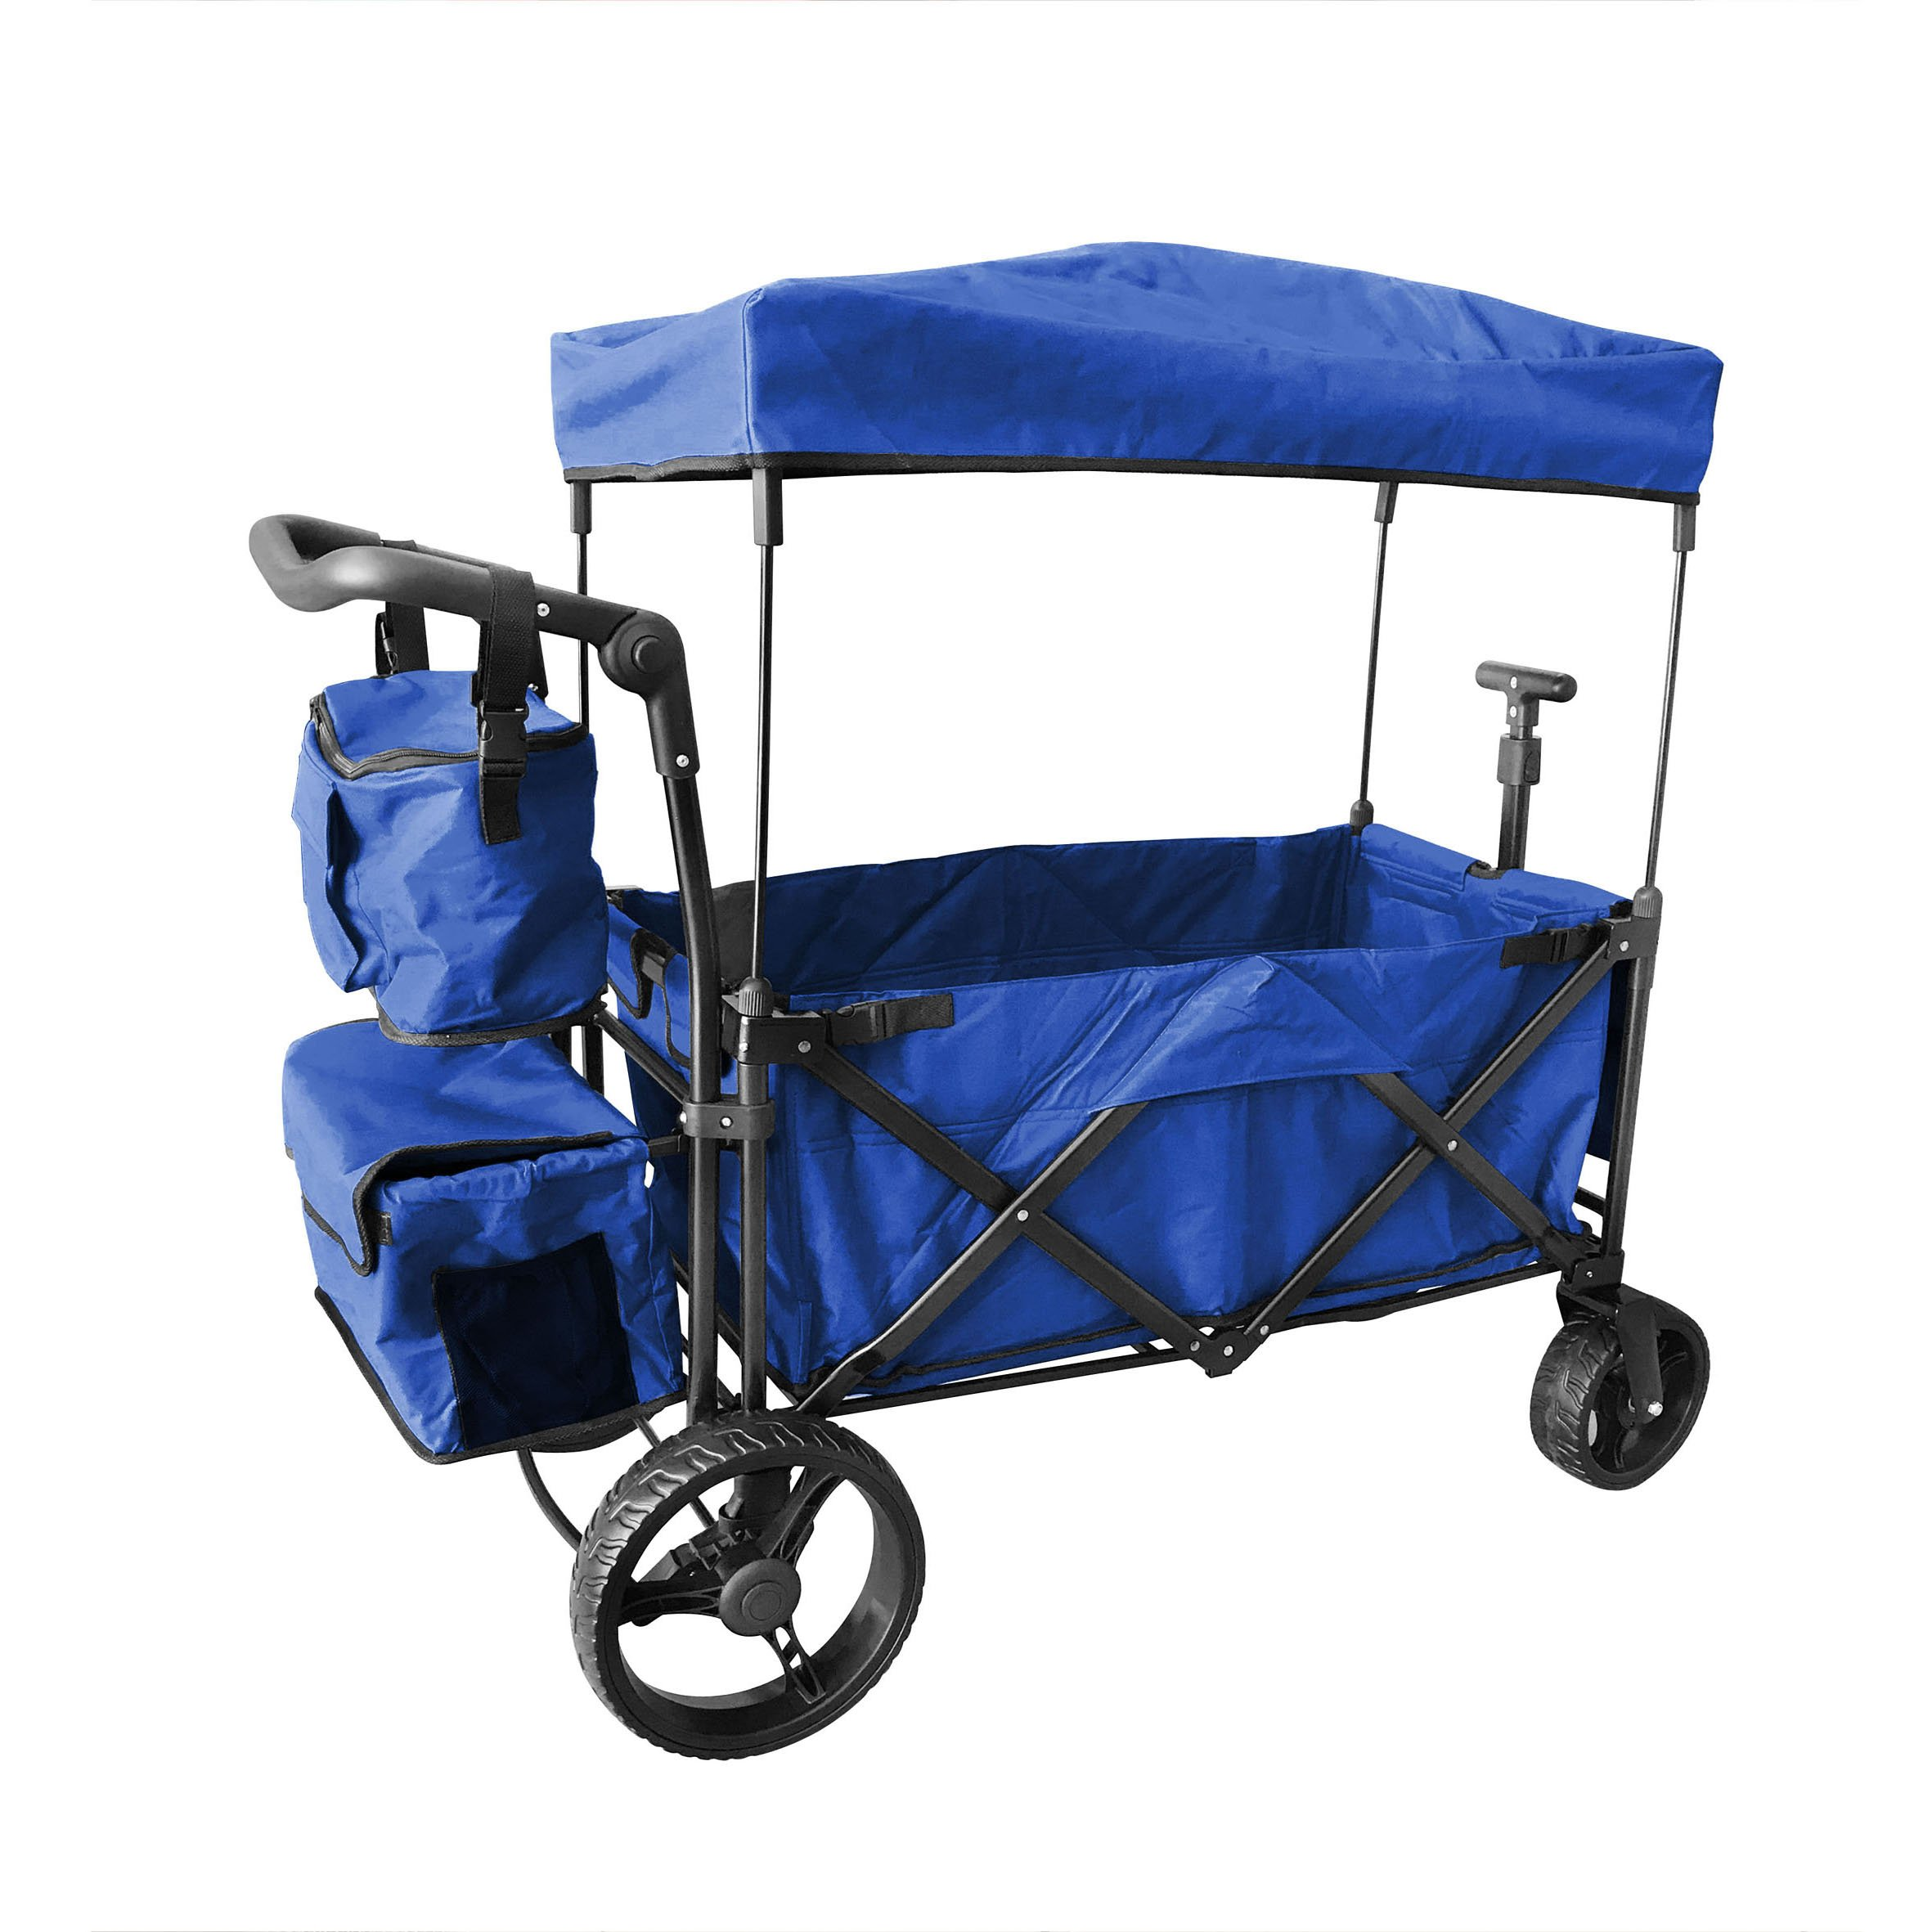 BLUE PUSH AND PULL HANDLE WITH WIDE OFF ROAD ALL TERRAIN TIRES FOLDING STROLLER WAGON W/ CANOPY BEACH OUTDOOR SPORT COLLAPSIBLE BABY TROLLEY GARDEN UTILITY SHOPPING TRAVEL CARTFREE CARRYING BAG